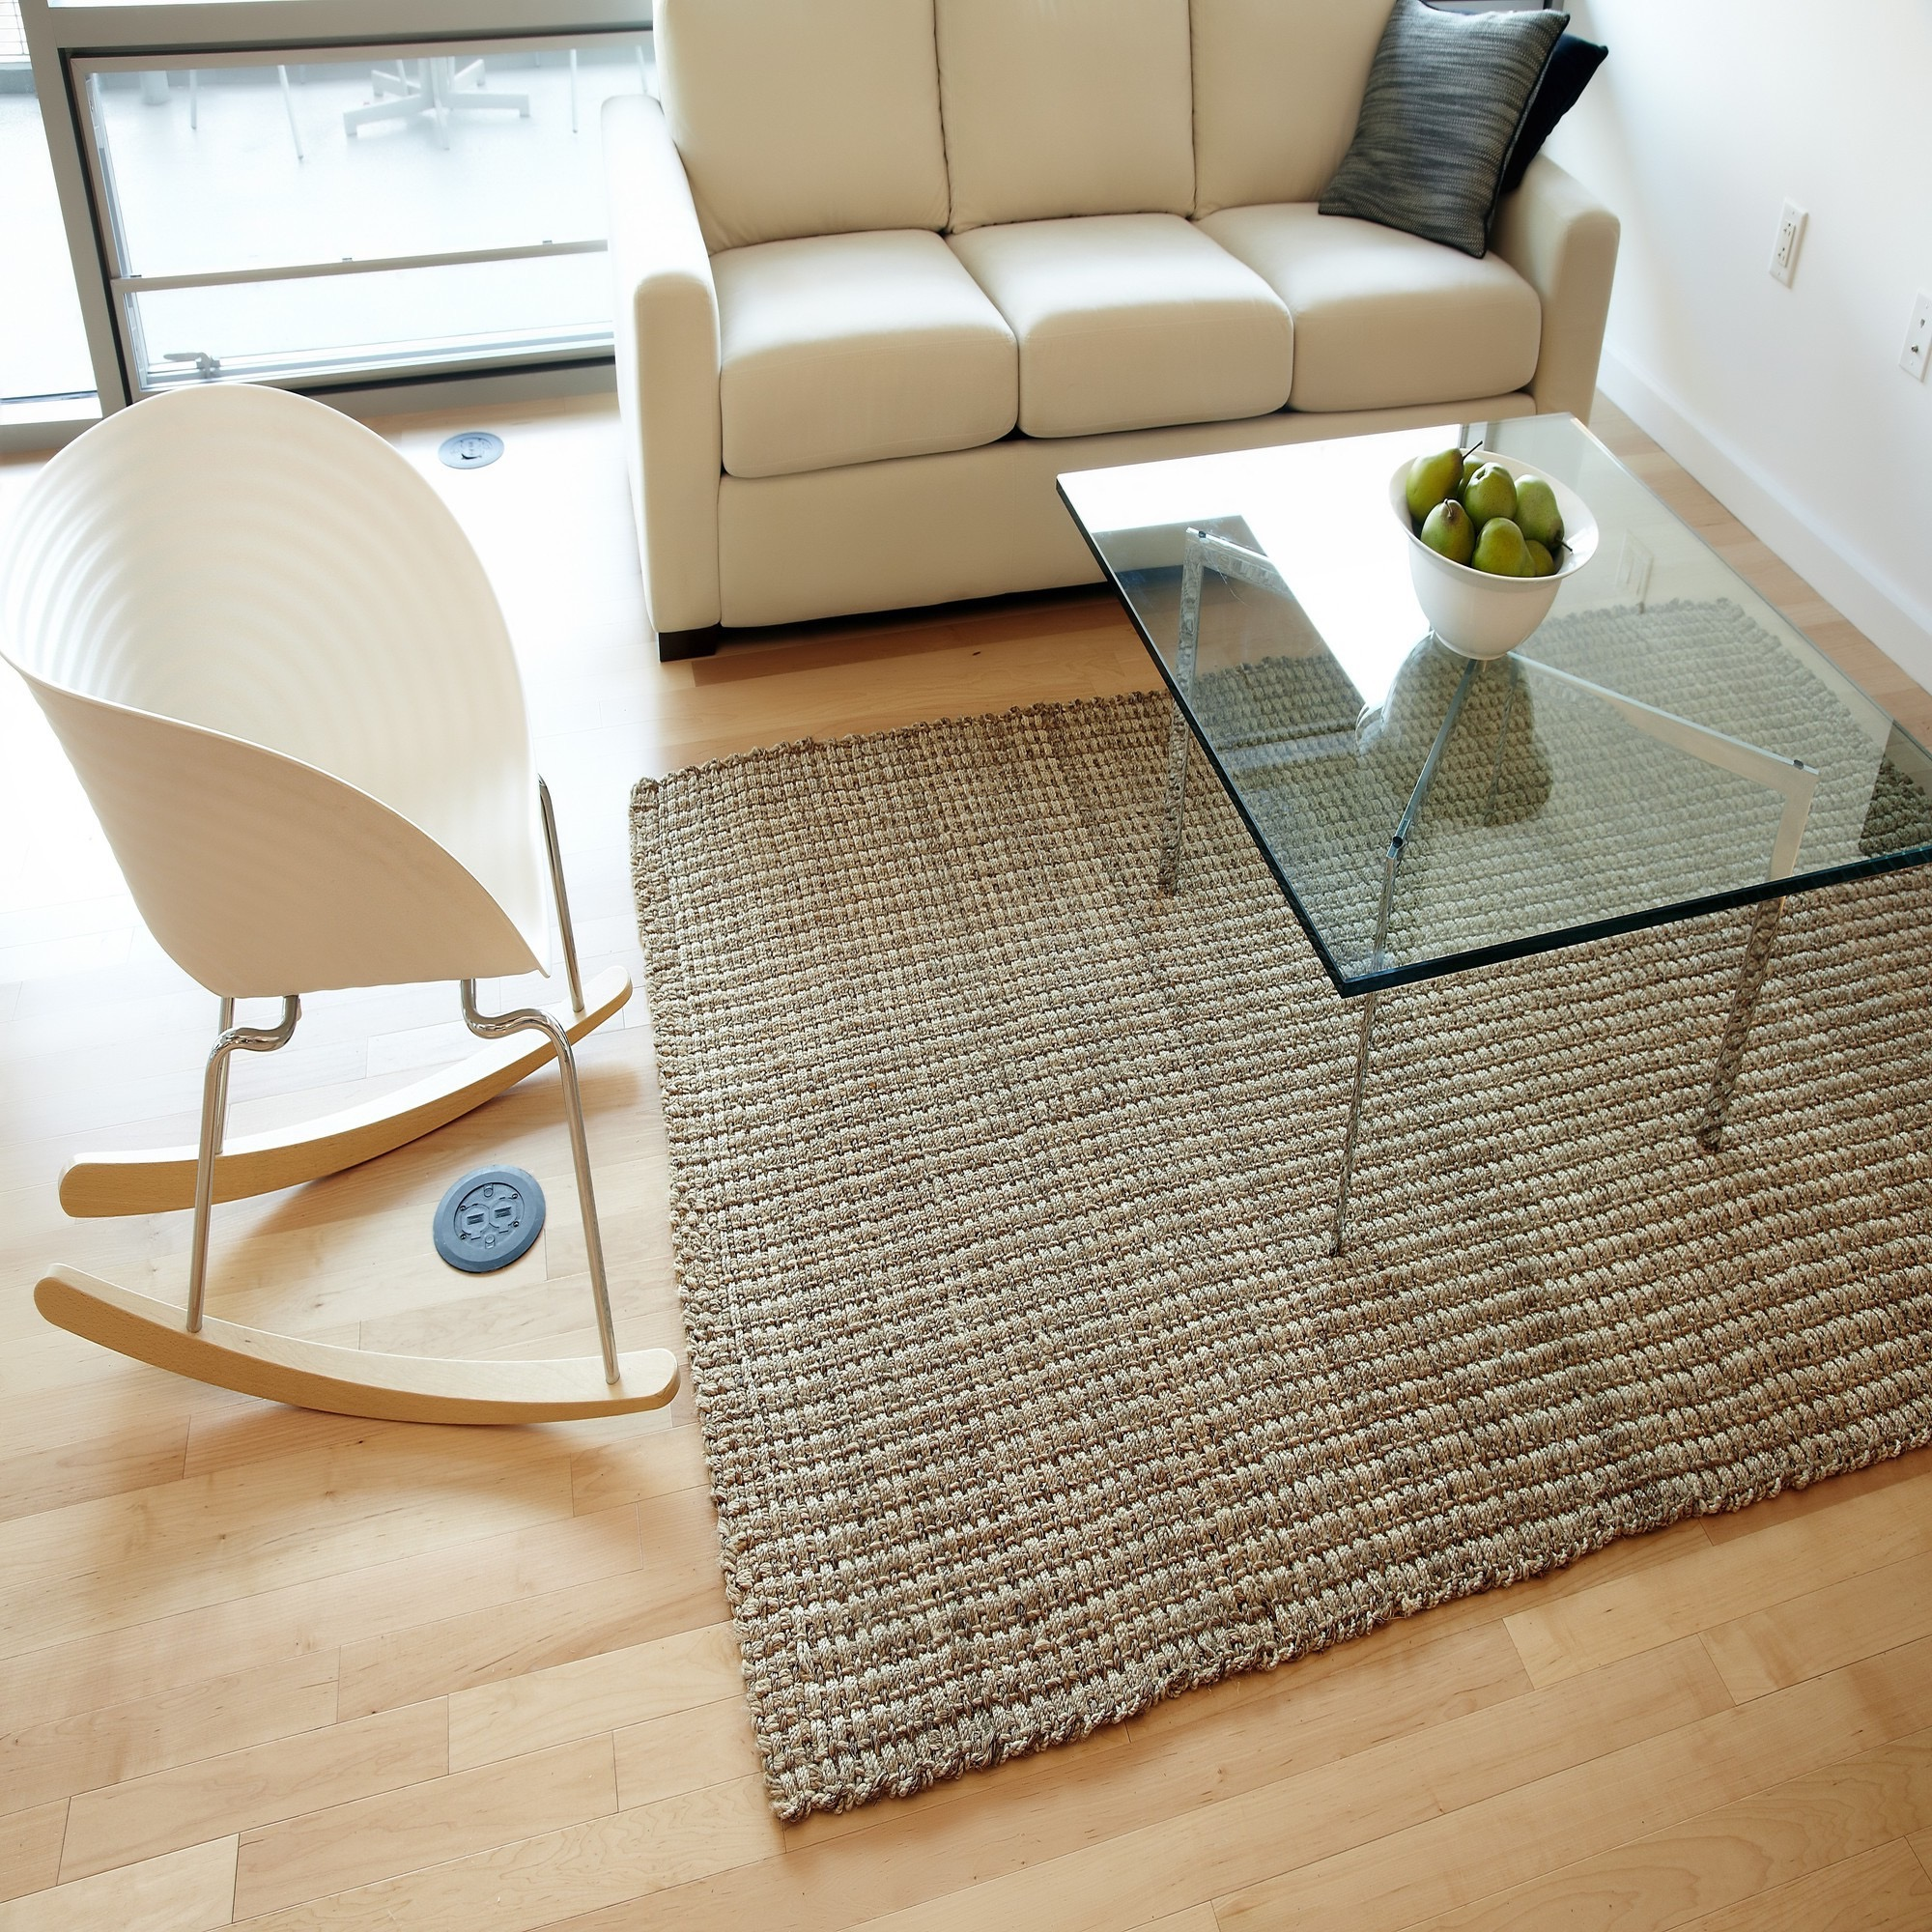 Contemporary Square Braided Rugs For Minimalist Living Room (Image 3 of 15)